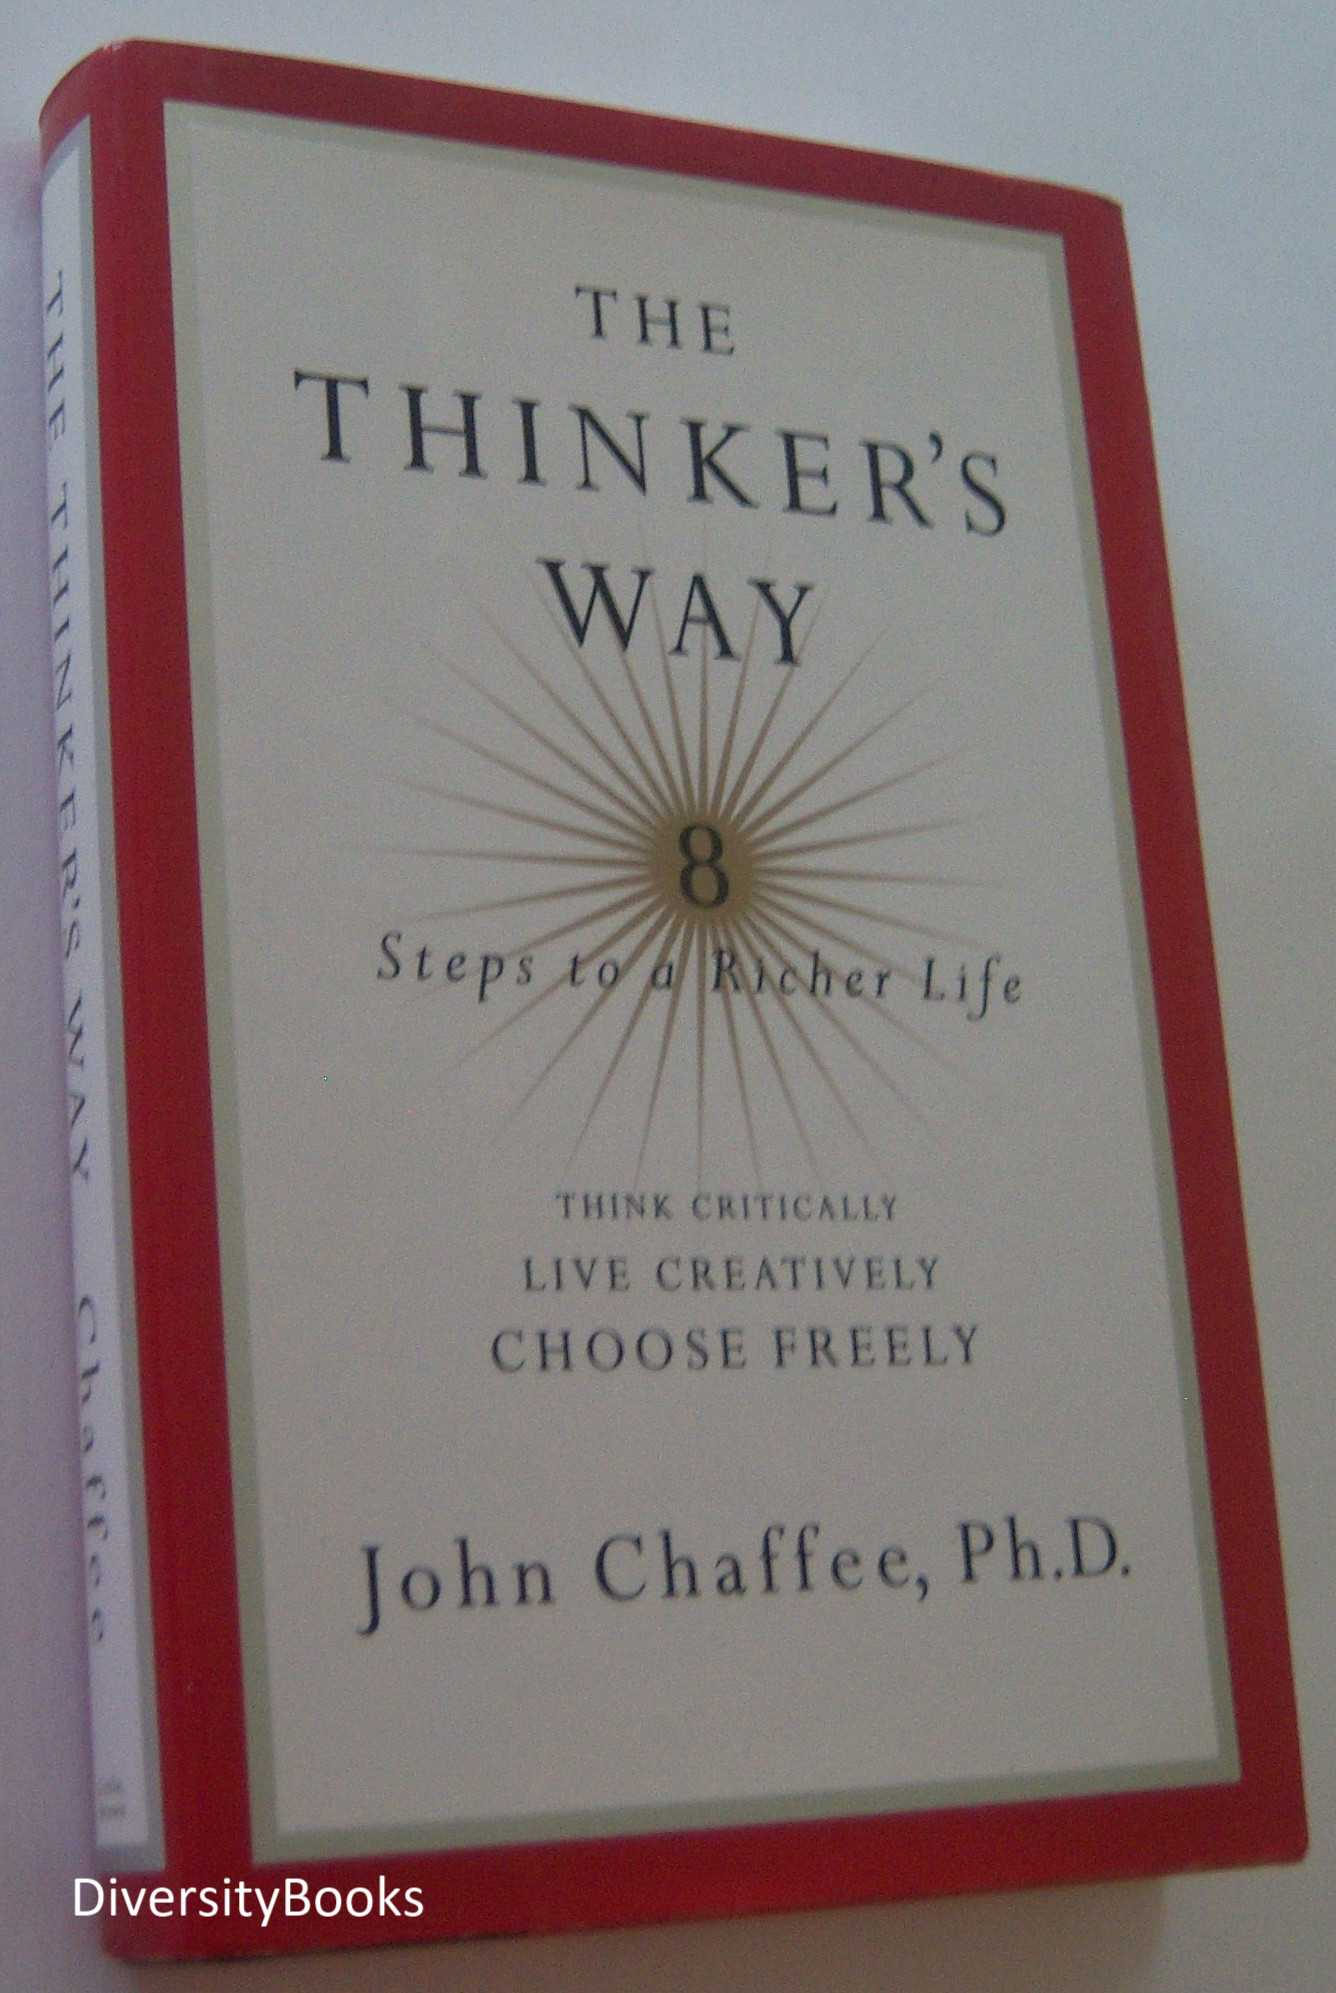 Image for THE THINKER'S WAY : 8 Steps to a Richer Life